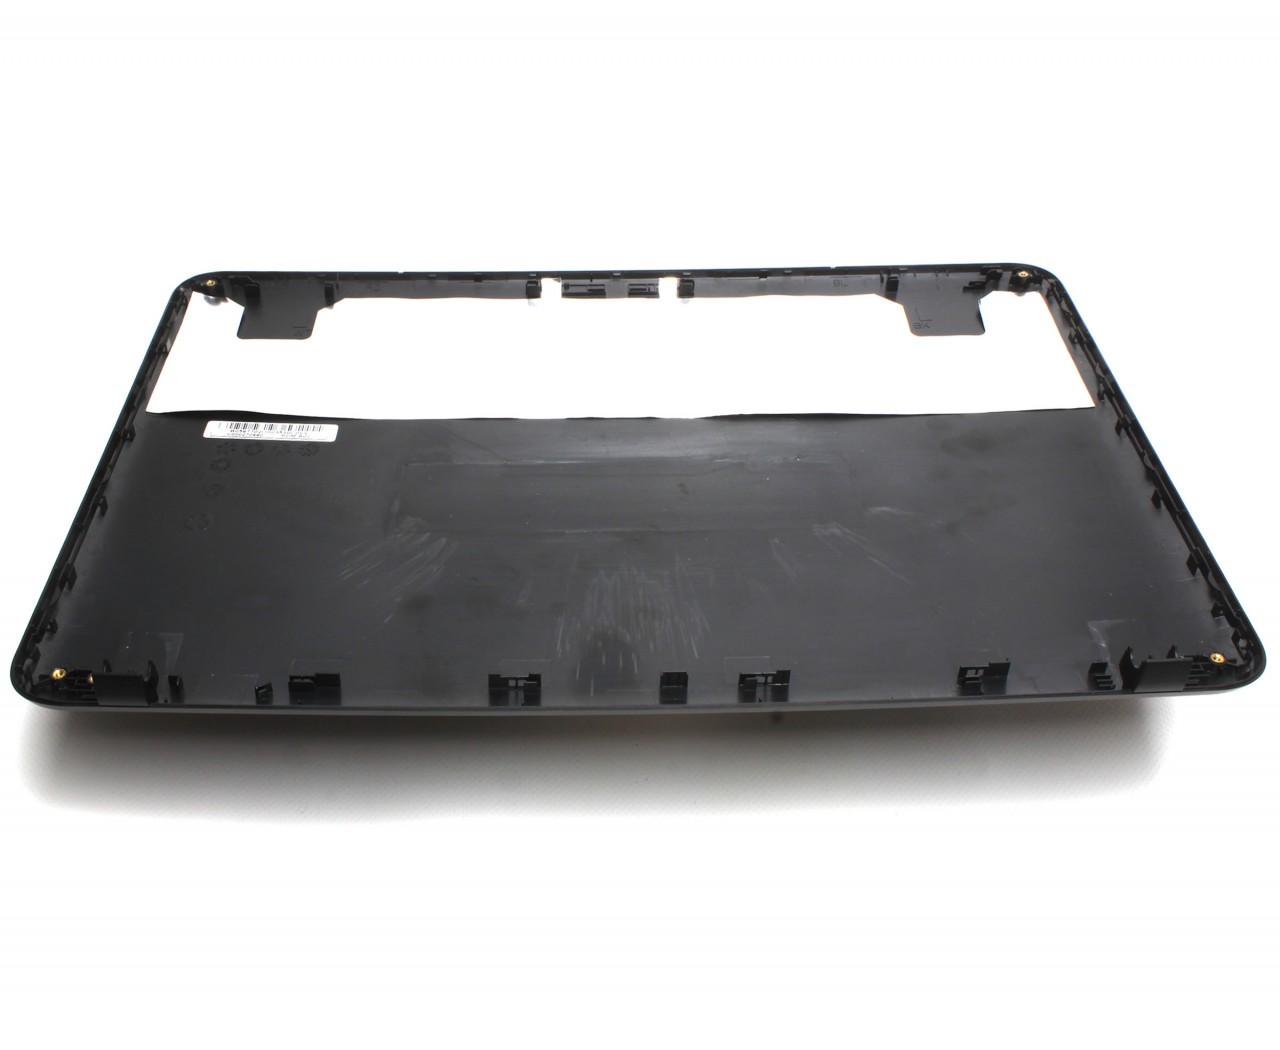 Capac Display BackCover Toshiba Satellite S855 Carcasa Display Neagra cu 2 Suruburi Balamale imagine powerlaptop.ro 2021